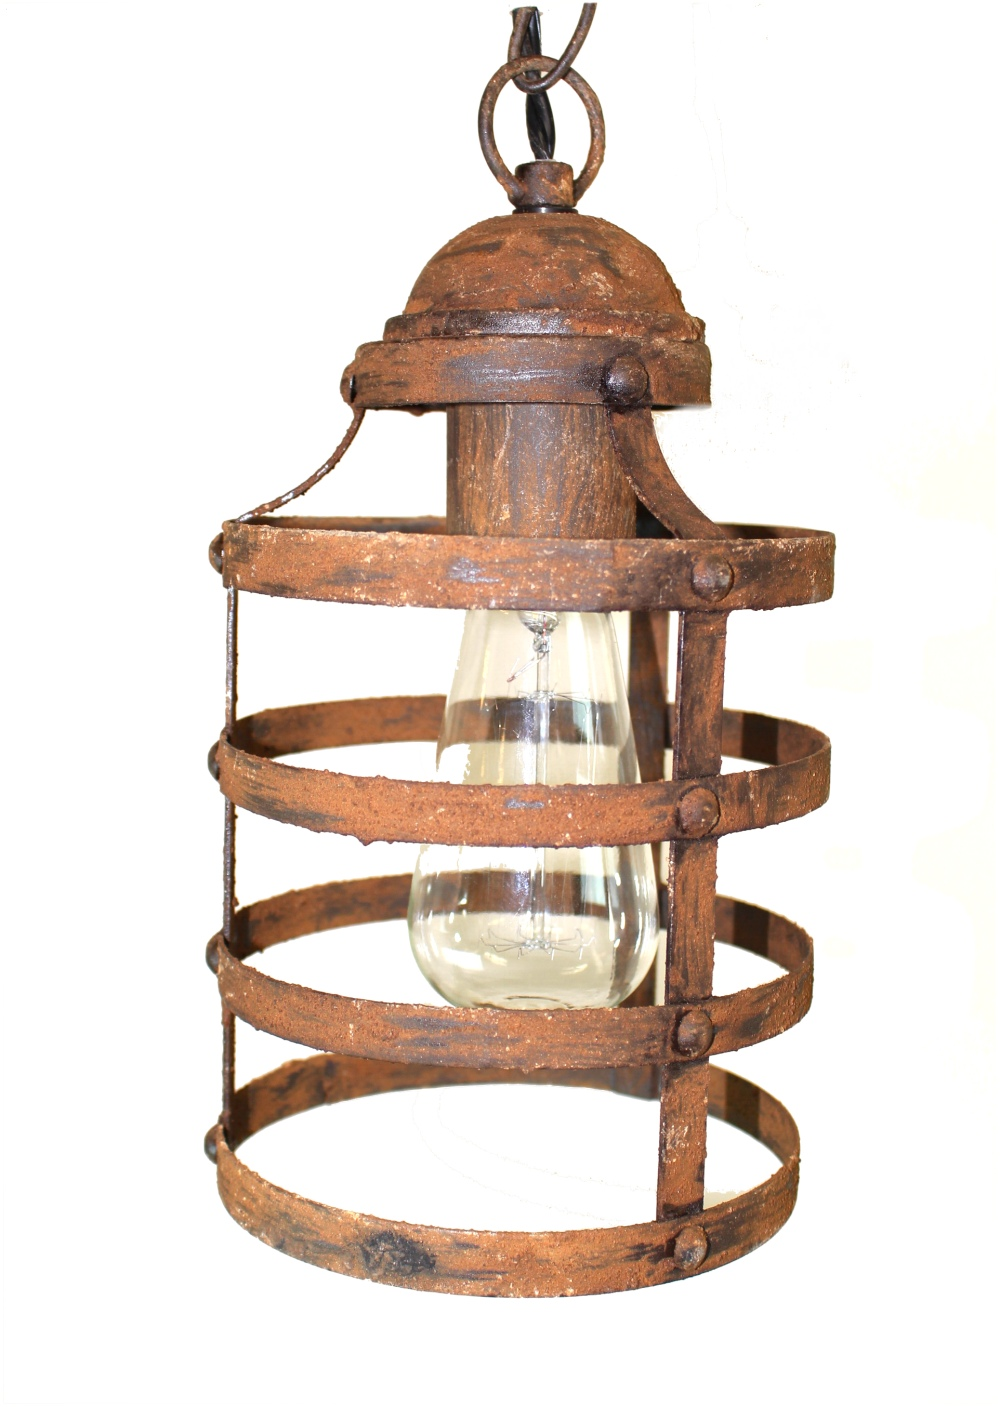 Gothic Regency Rust Iron Cage Pendant Light Fixture w Hanging Chain Old Vintage Style